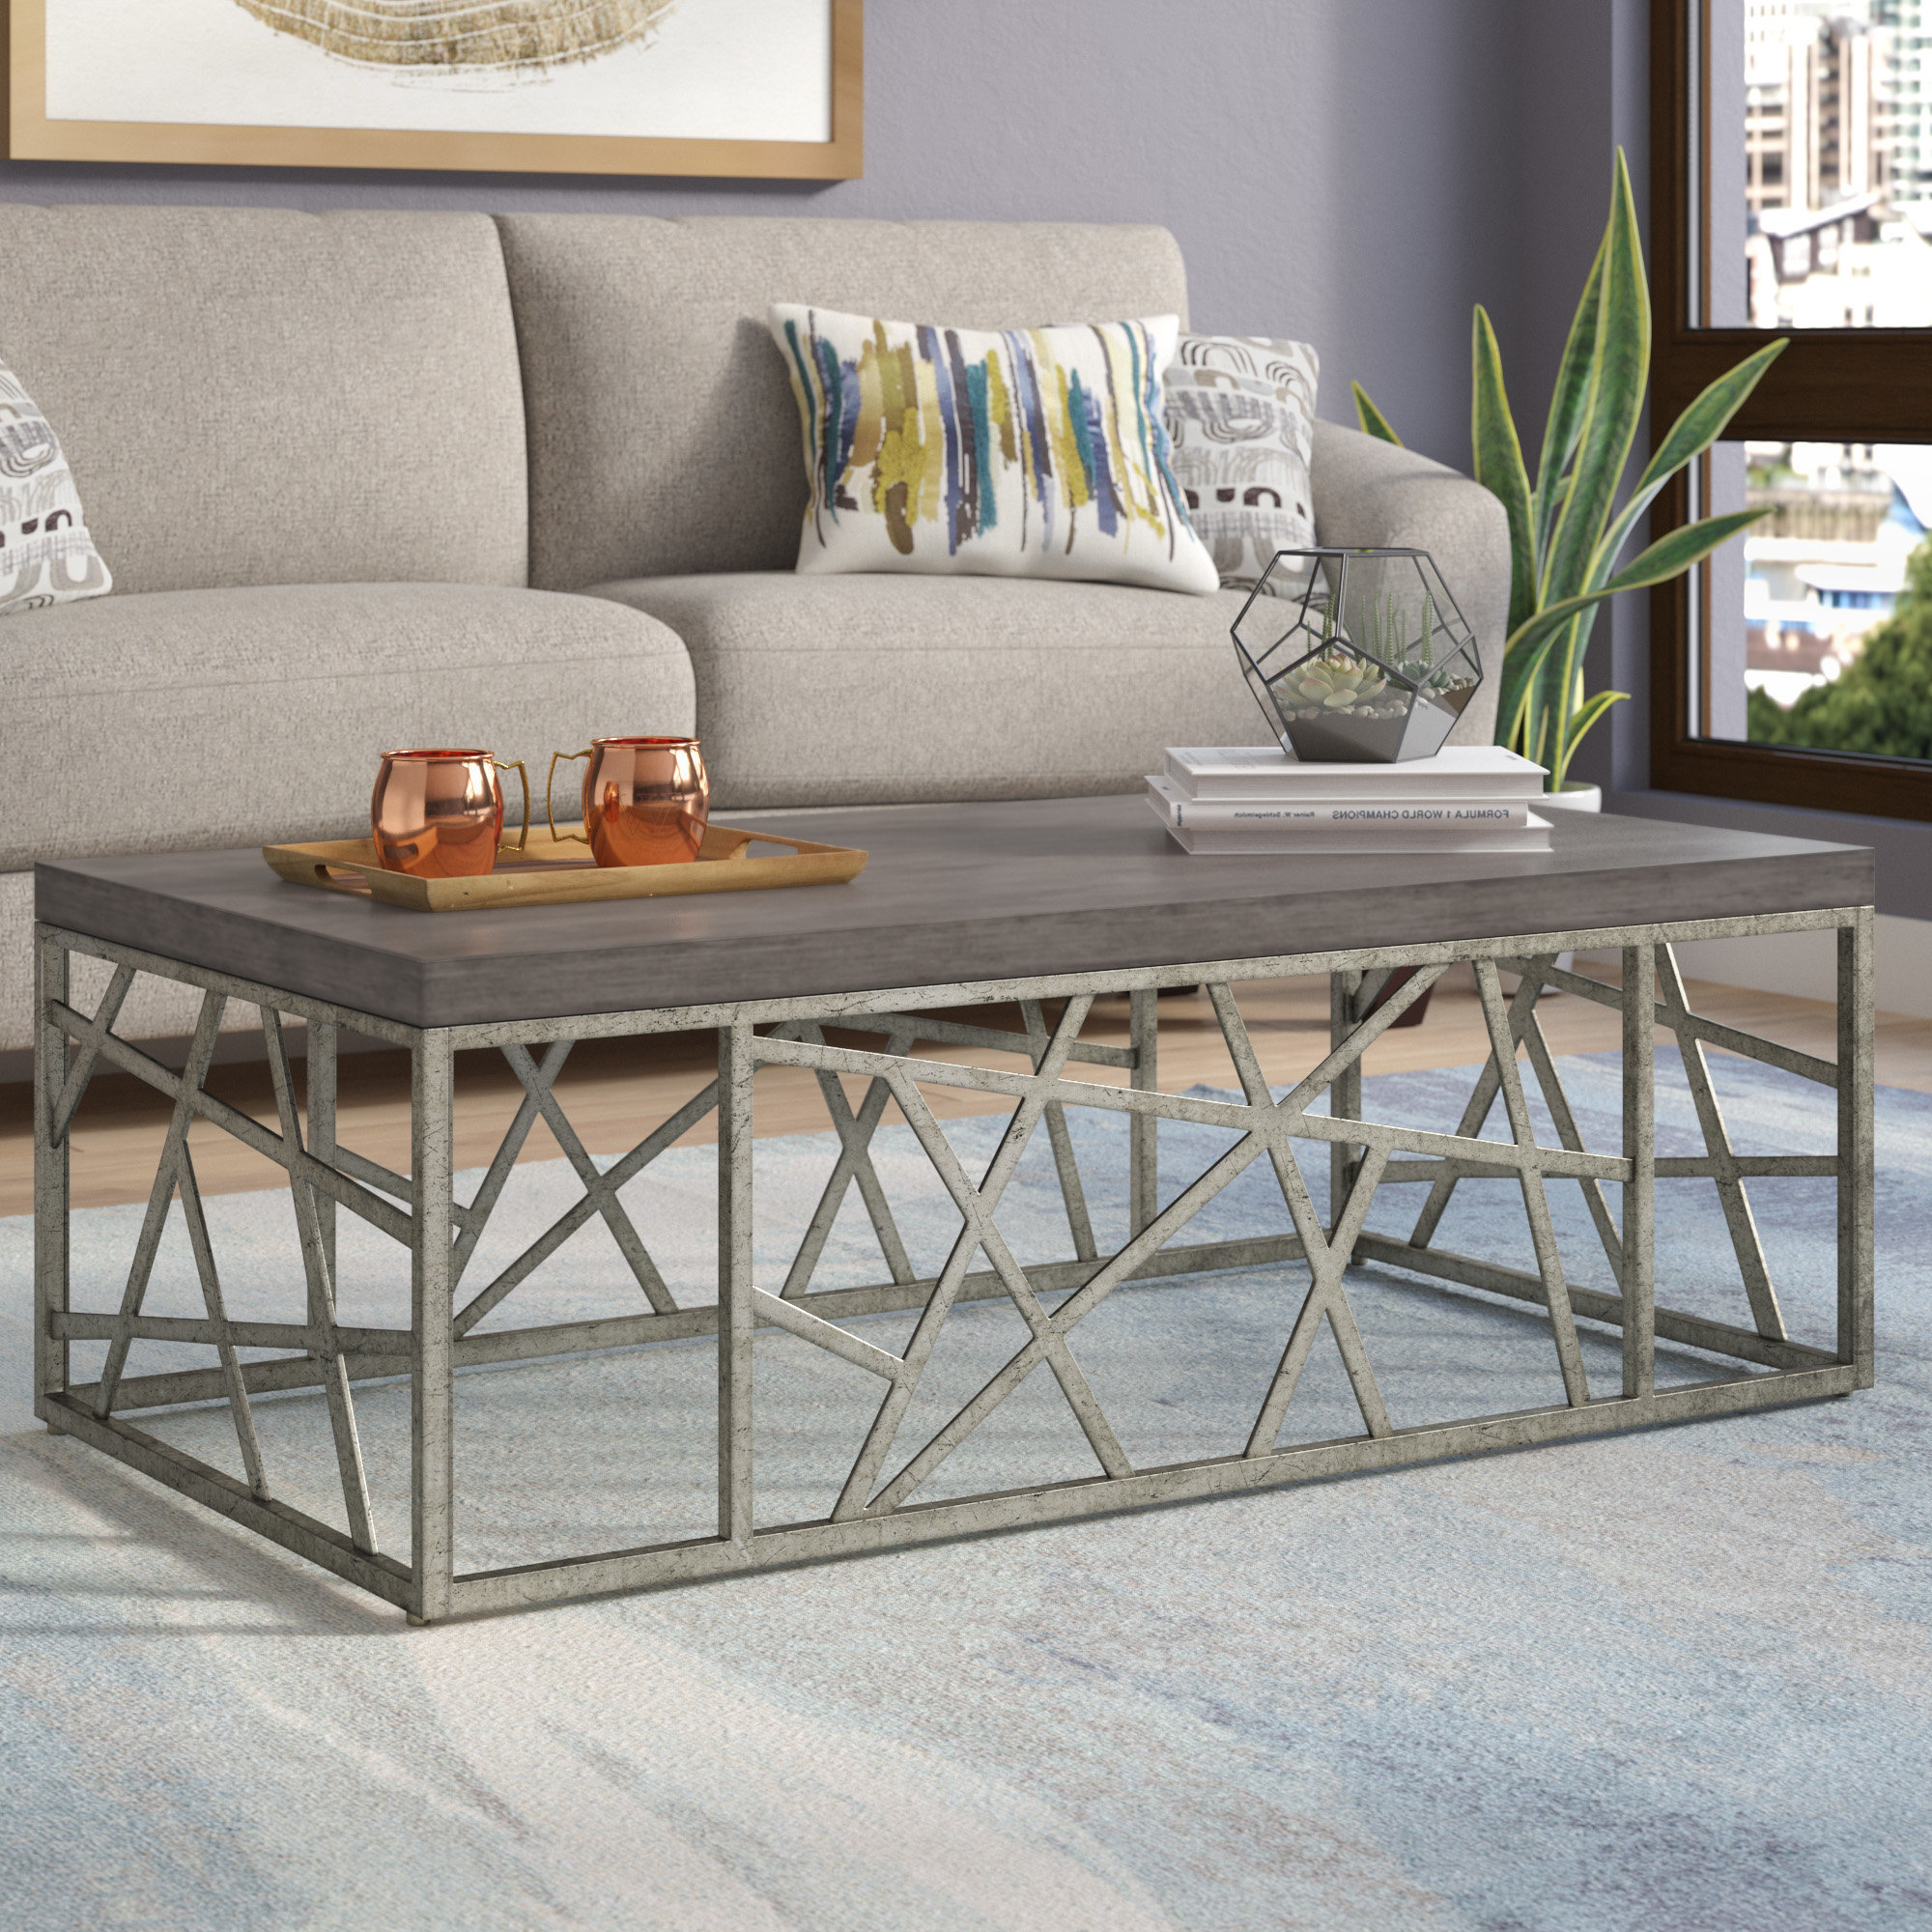 Well Liked Brayden Studio Hiers Coffee Table & Reviews (View 19 of 20)